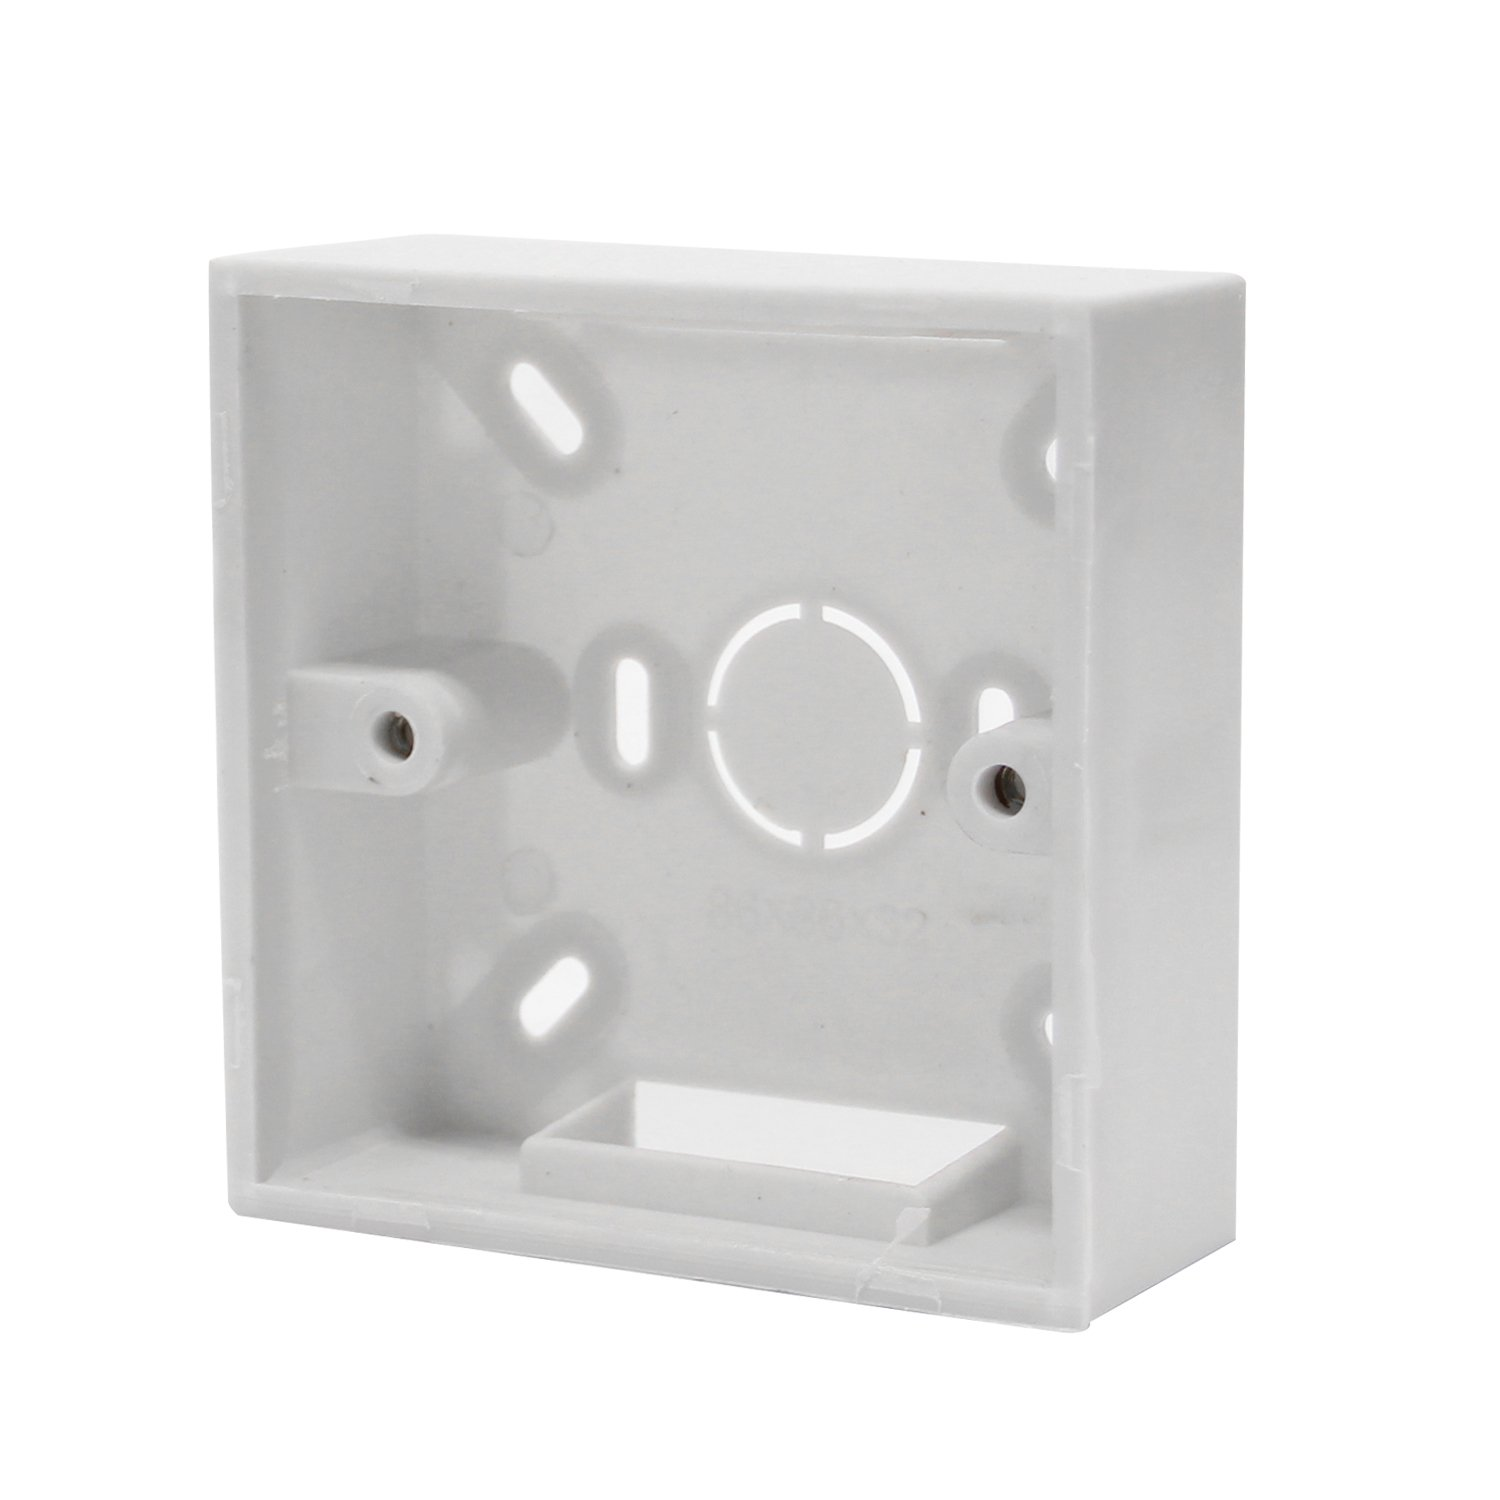 Cheap Standard Electrical Junction Box, find Standard Electrical ...